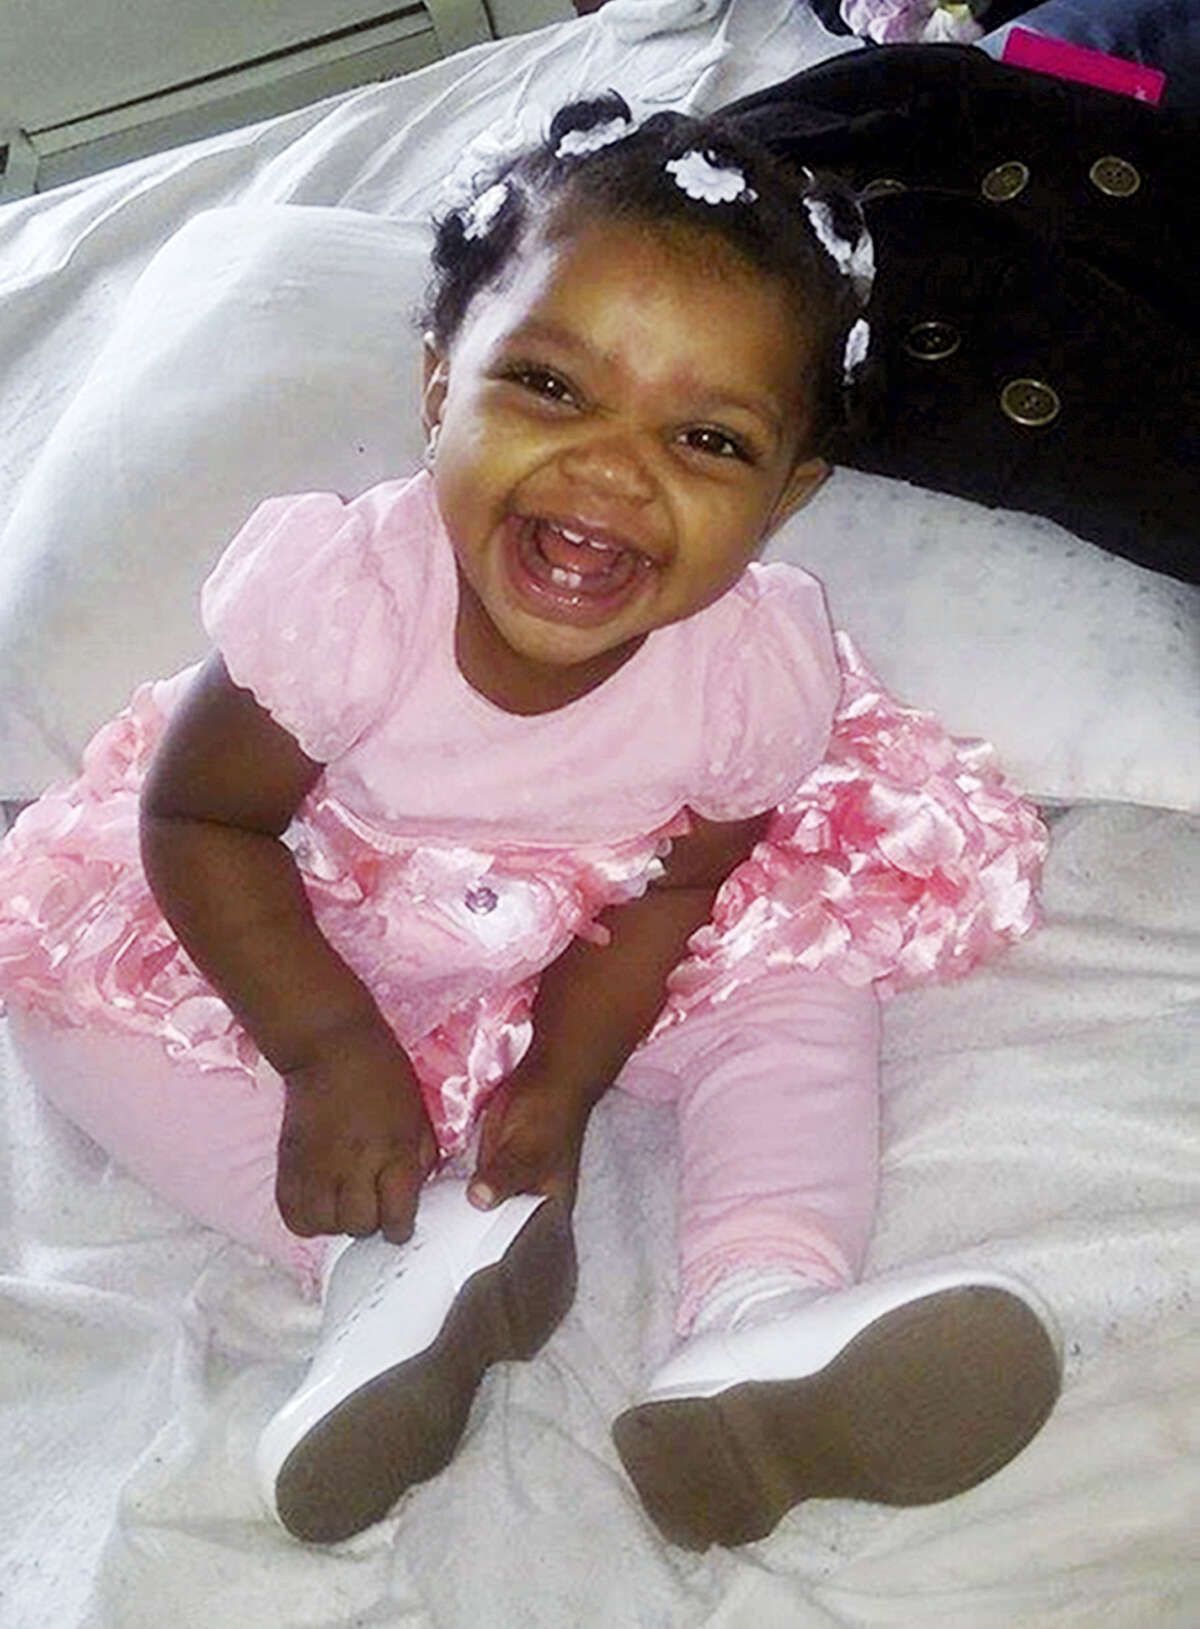 This photo provided by Helen Jackson shows Cataleya Tamekia-Damiah Wimberly before her 1st birthday party in Milwaukee. Wimberly died nearly three weeks later from a methadone overdose in a case the Milwaukee police are still investigating. The number of children's deaths is still small relative to the overall toll from opioids, but toddler fatalities have climbed steadily over the last 10 years.